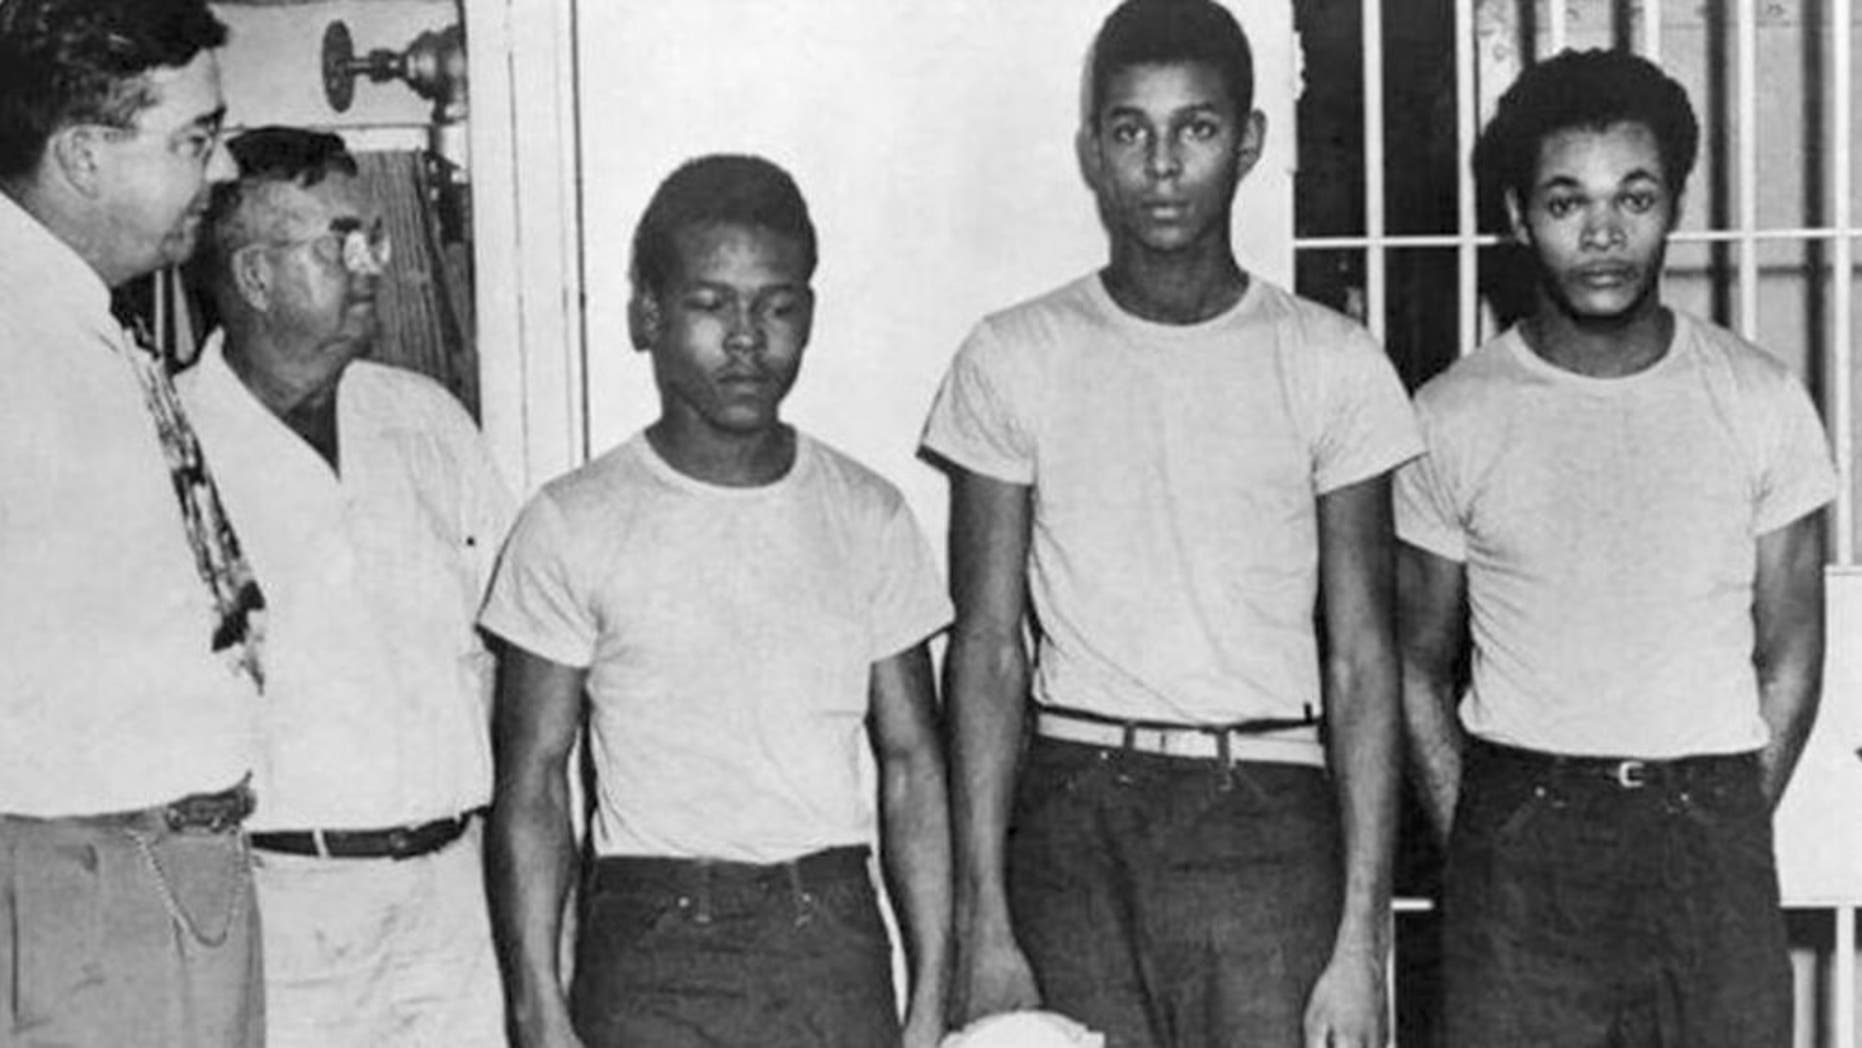 In this undated image released by the State Library and Archives of Florida, Lake County Sheriff Willis McCall, far left, and an unidentified man stand next to Walter Irvin, Samuel Shepherd and Charles Greenlee, from left, in Florida. The three men along with a fourth were charged with rape in 1949. Florida Gov. Ron DeSantis and a Cabinet granted posthumous pardons Friday, Jan. 11, 2019, to Shepherd, Irvin, Charles Greenlee and Ernest Thomas, the four African-American men accused of raping a white woman in 1949 in a case now seen as a racial injustice. (State Library and Archives of Florida via AP)